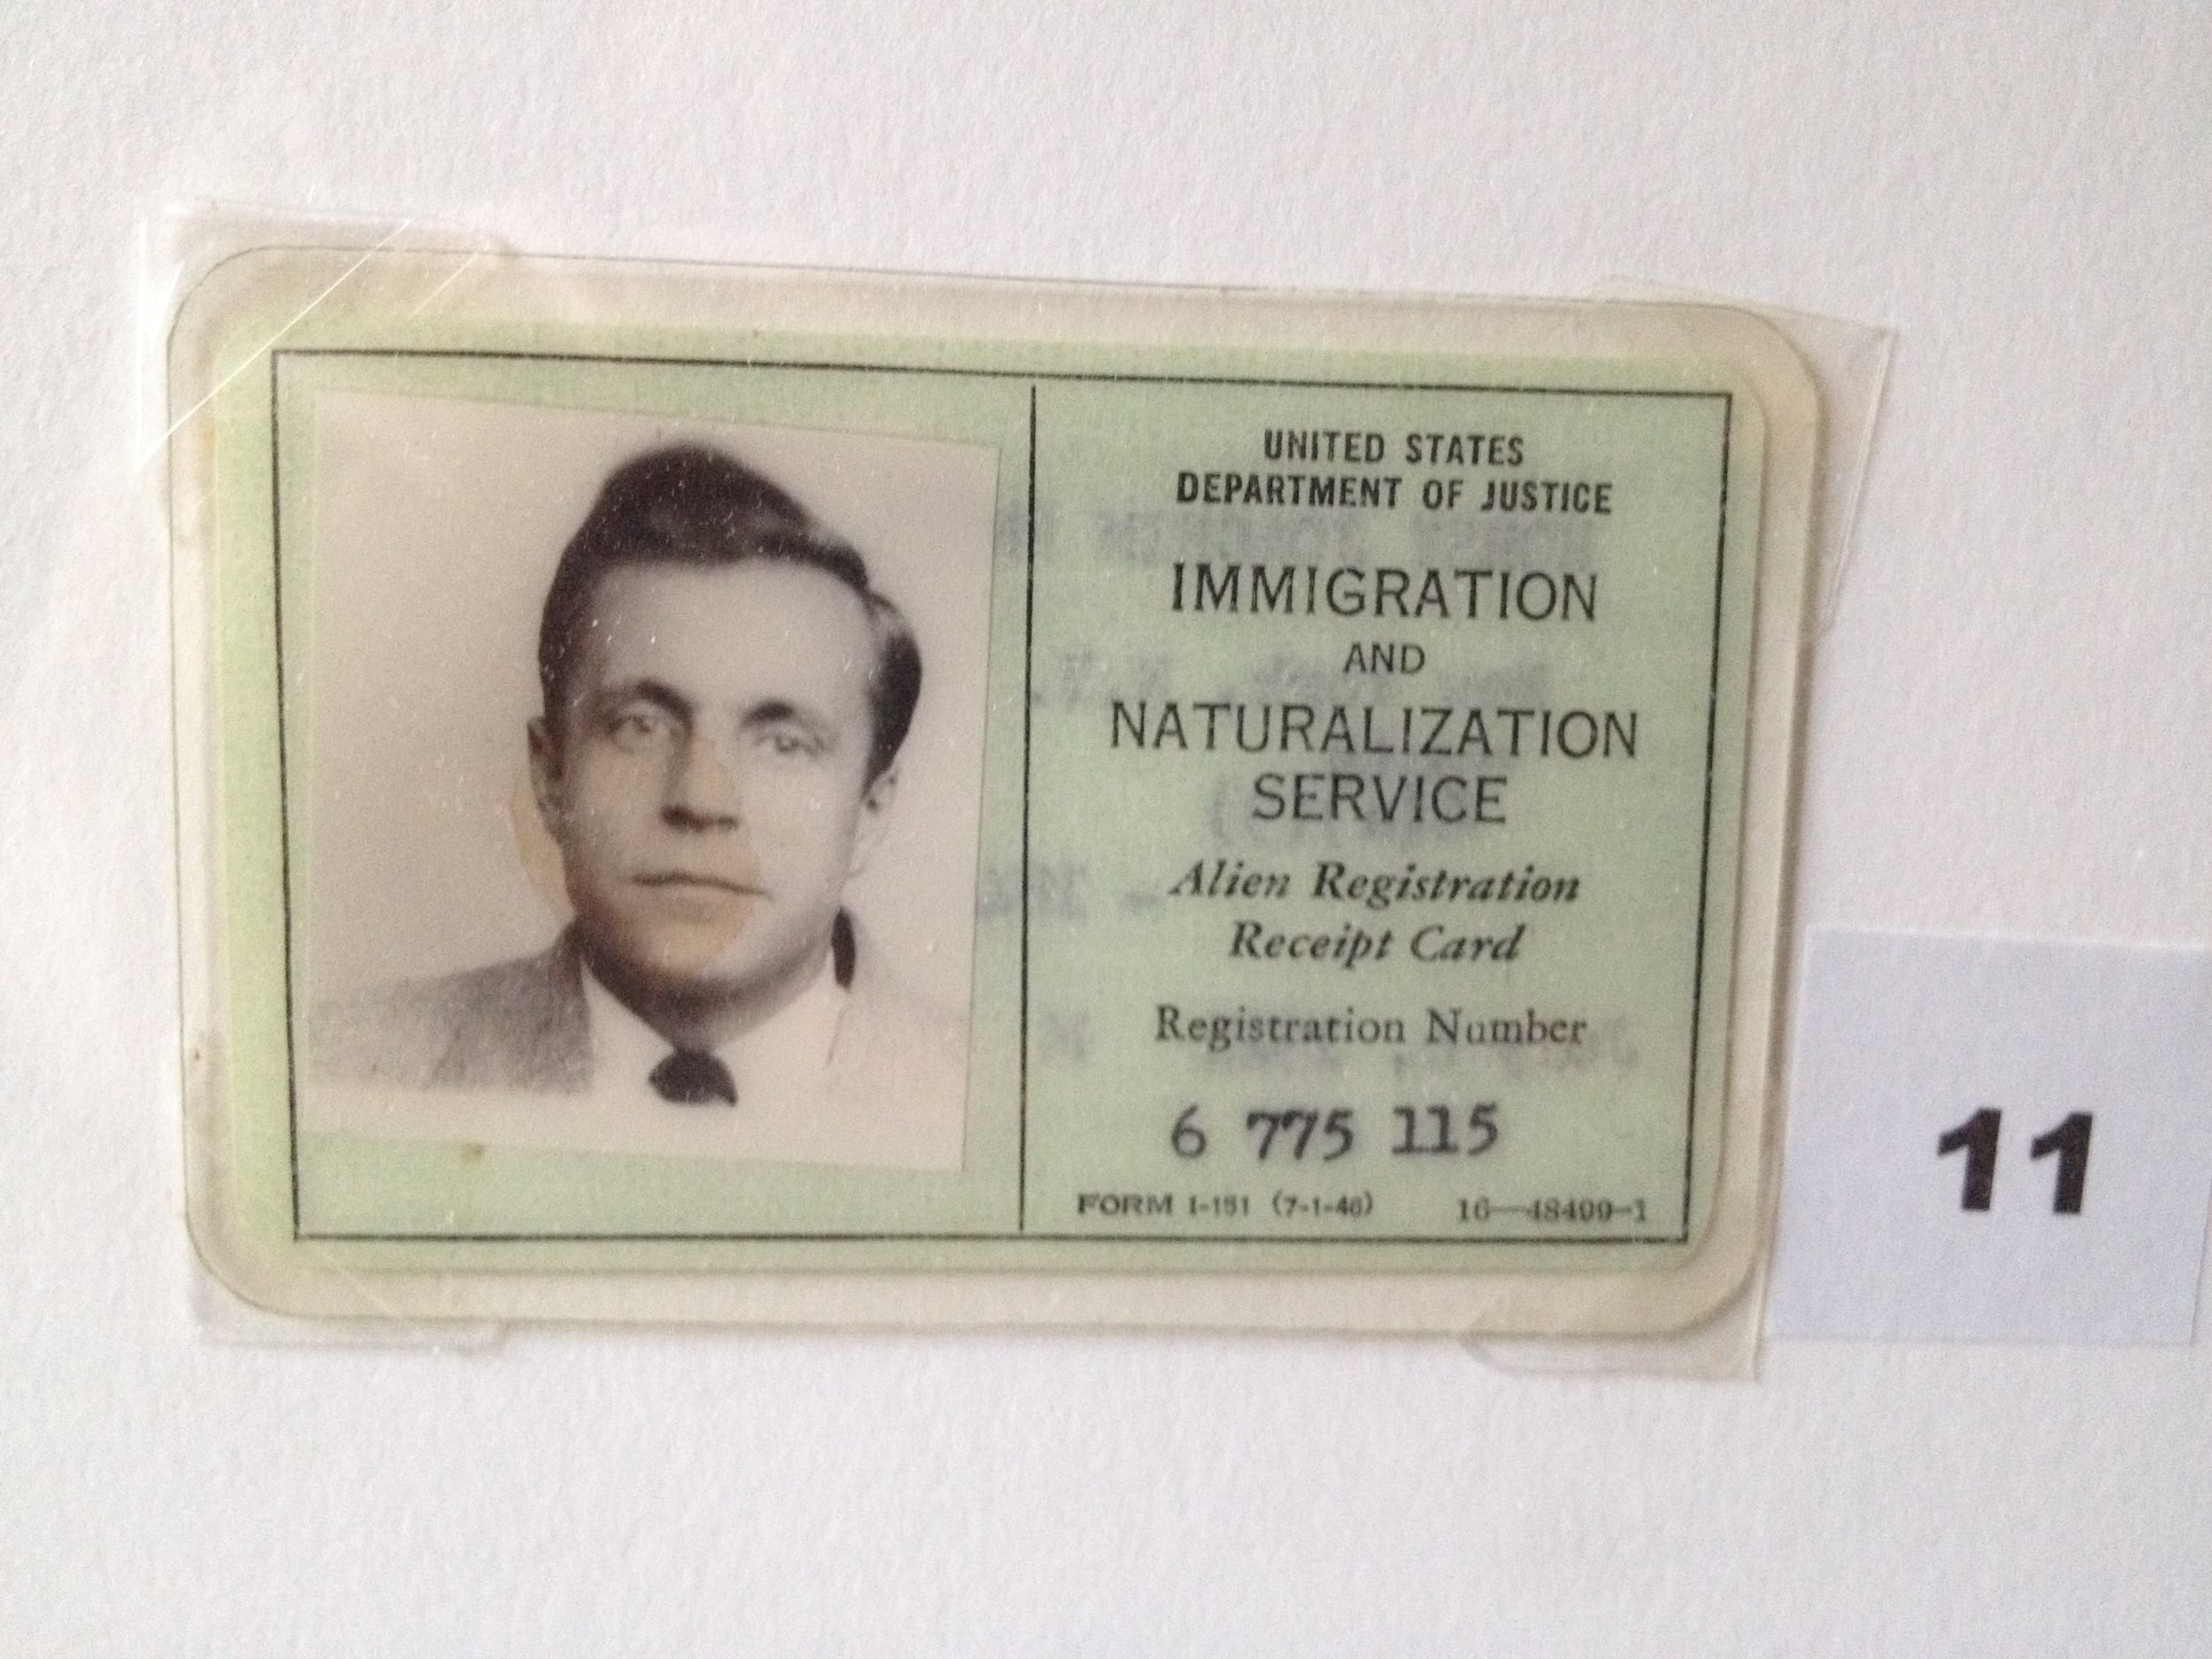 My father's green card, upon entering the United States.